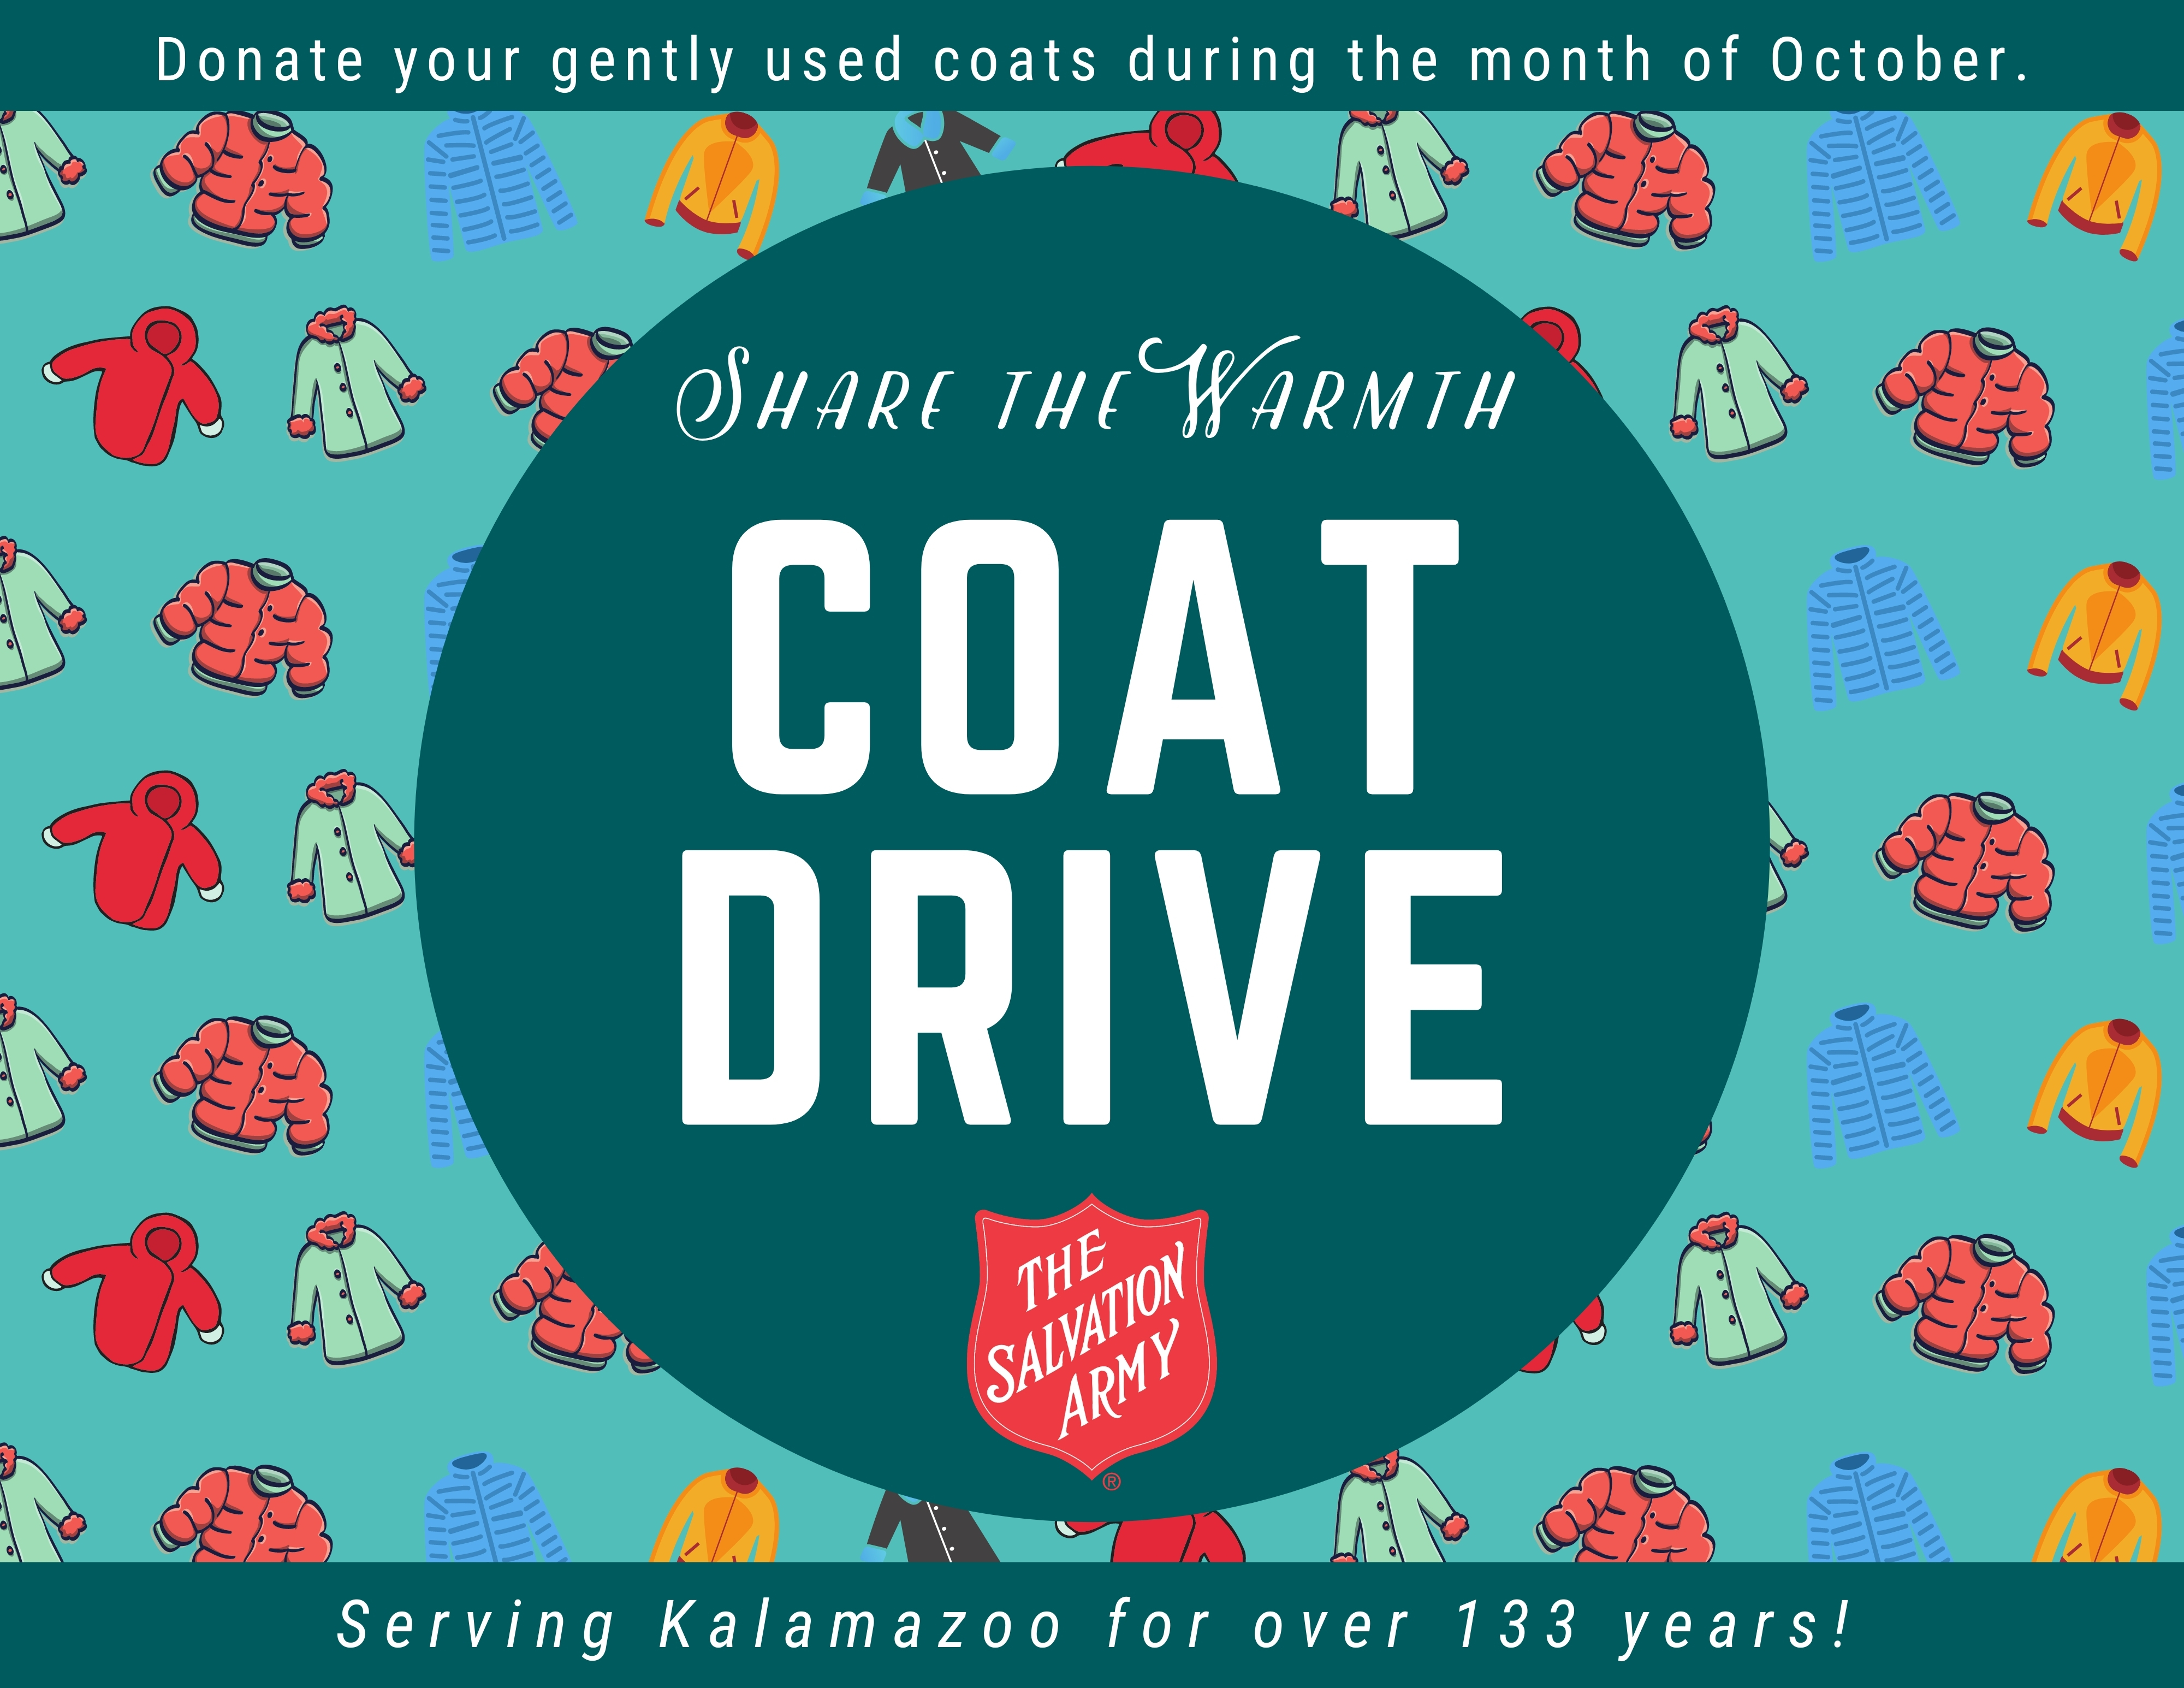 2020 Share the Warmth Coat Drive Image